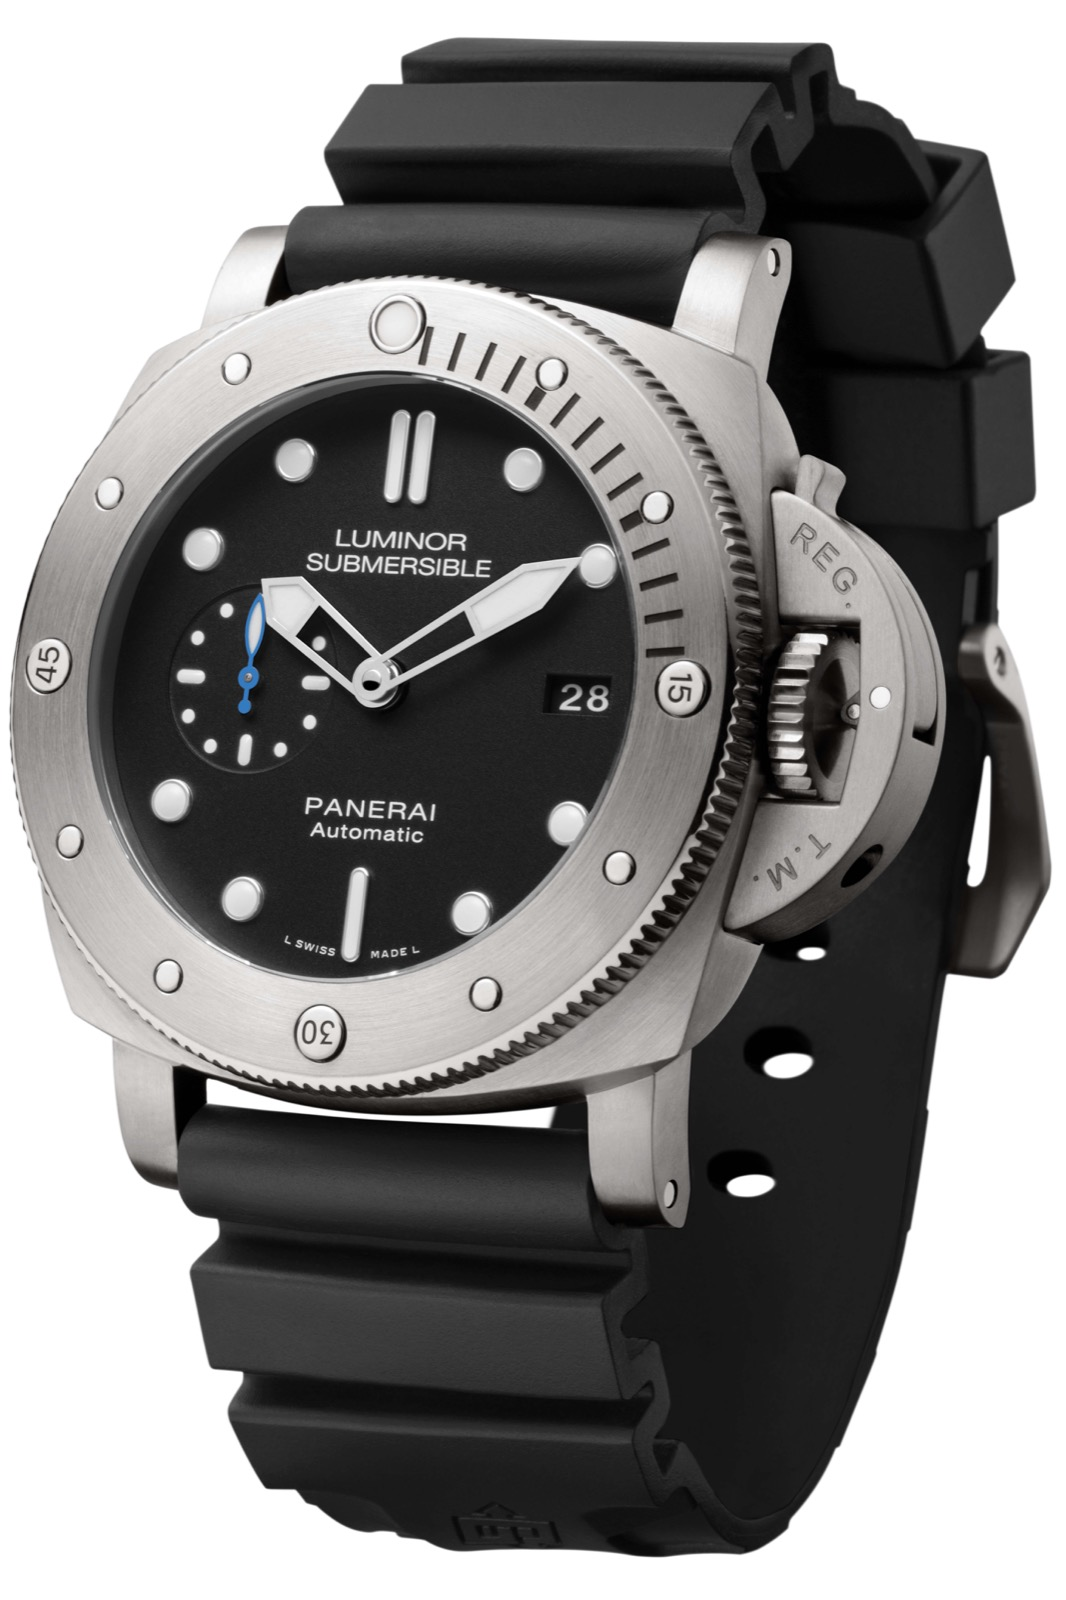 PANERAI LUMINOR SUBMERSIBLE 1950 3 DAYS AUTOMATIC TITANIO (PAM1305) - 47mm